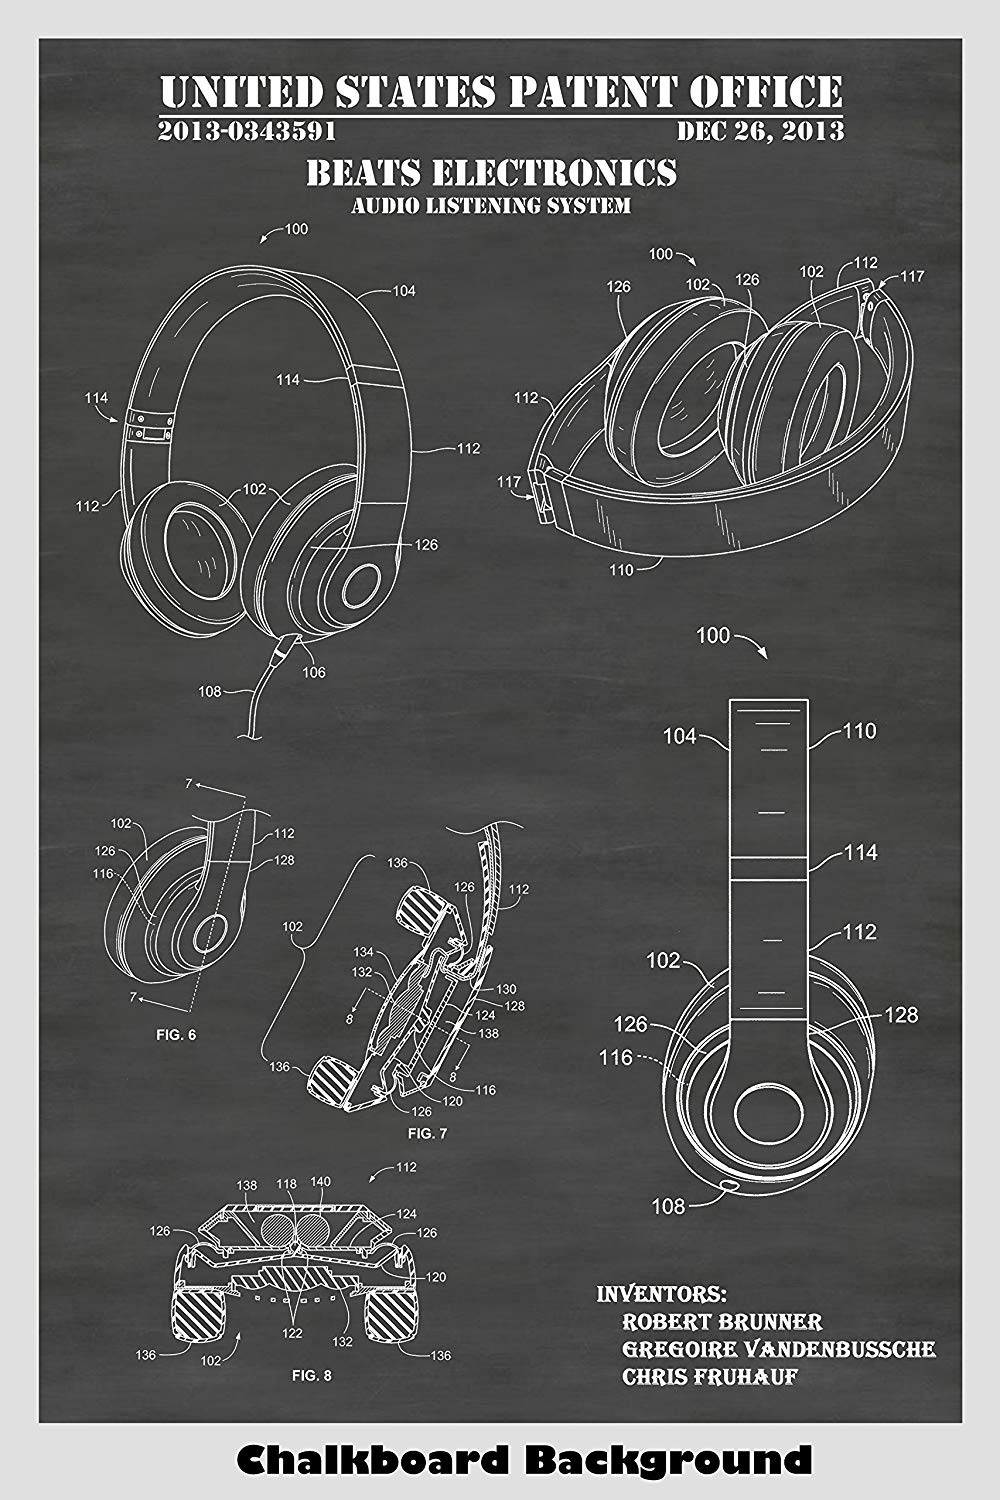 Patent Art for Beats Headphones